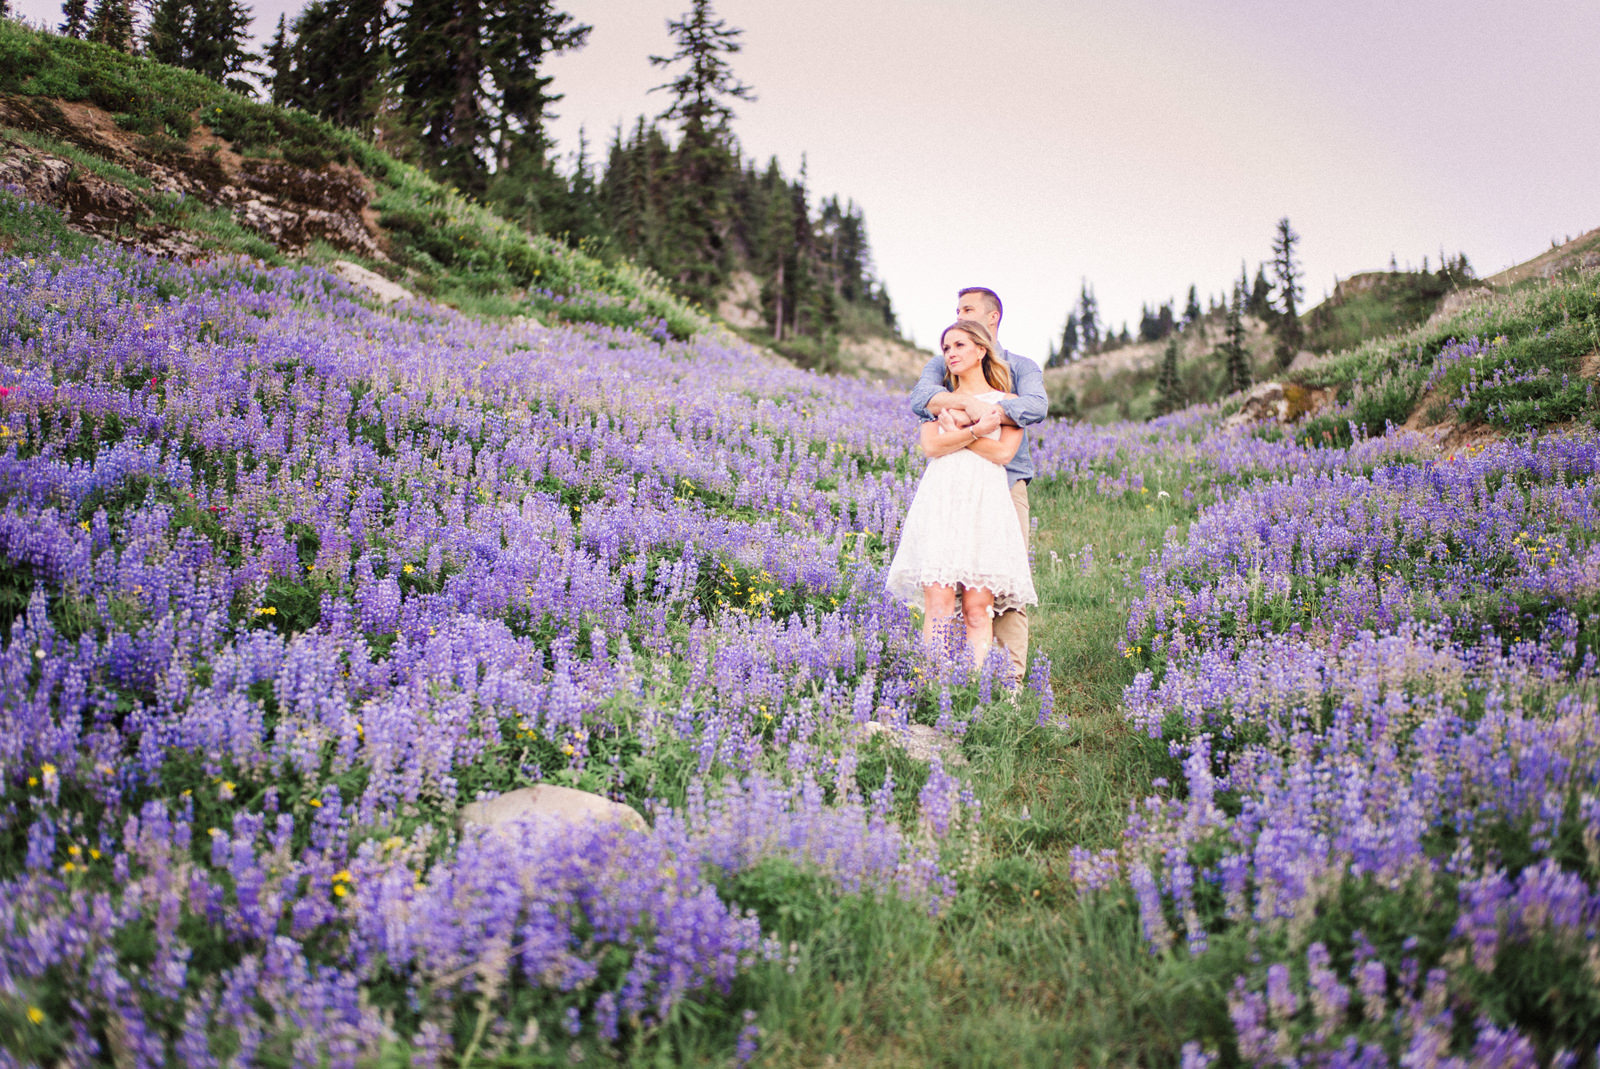 007-pacific-northwest-engagement-session-with-wildflowers-by-ryan-flynn.jpg